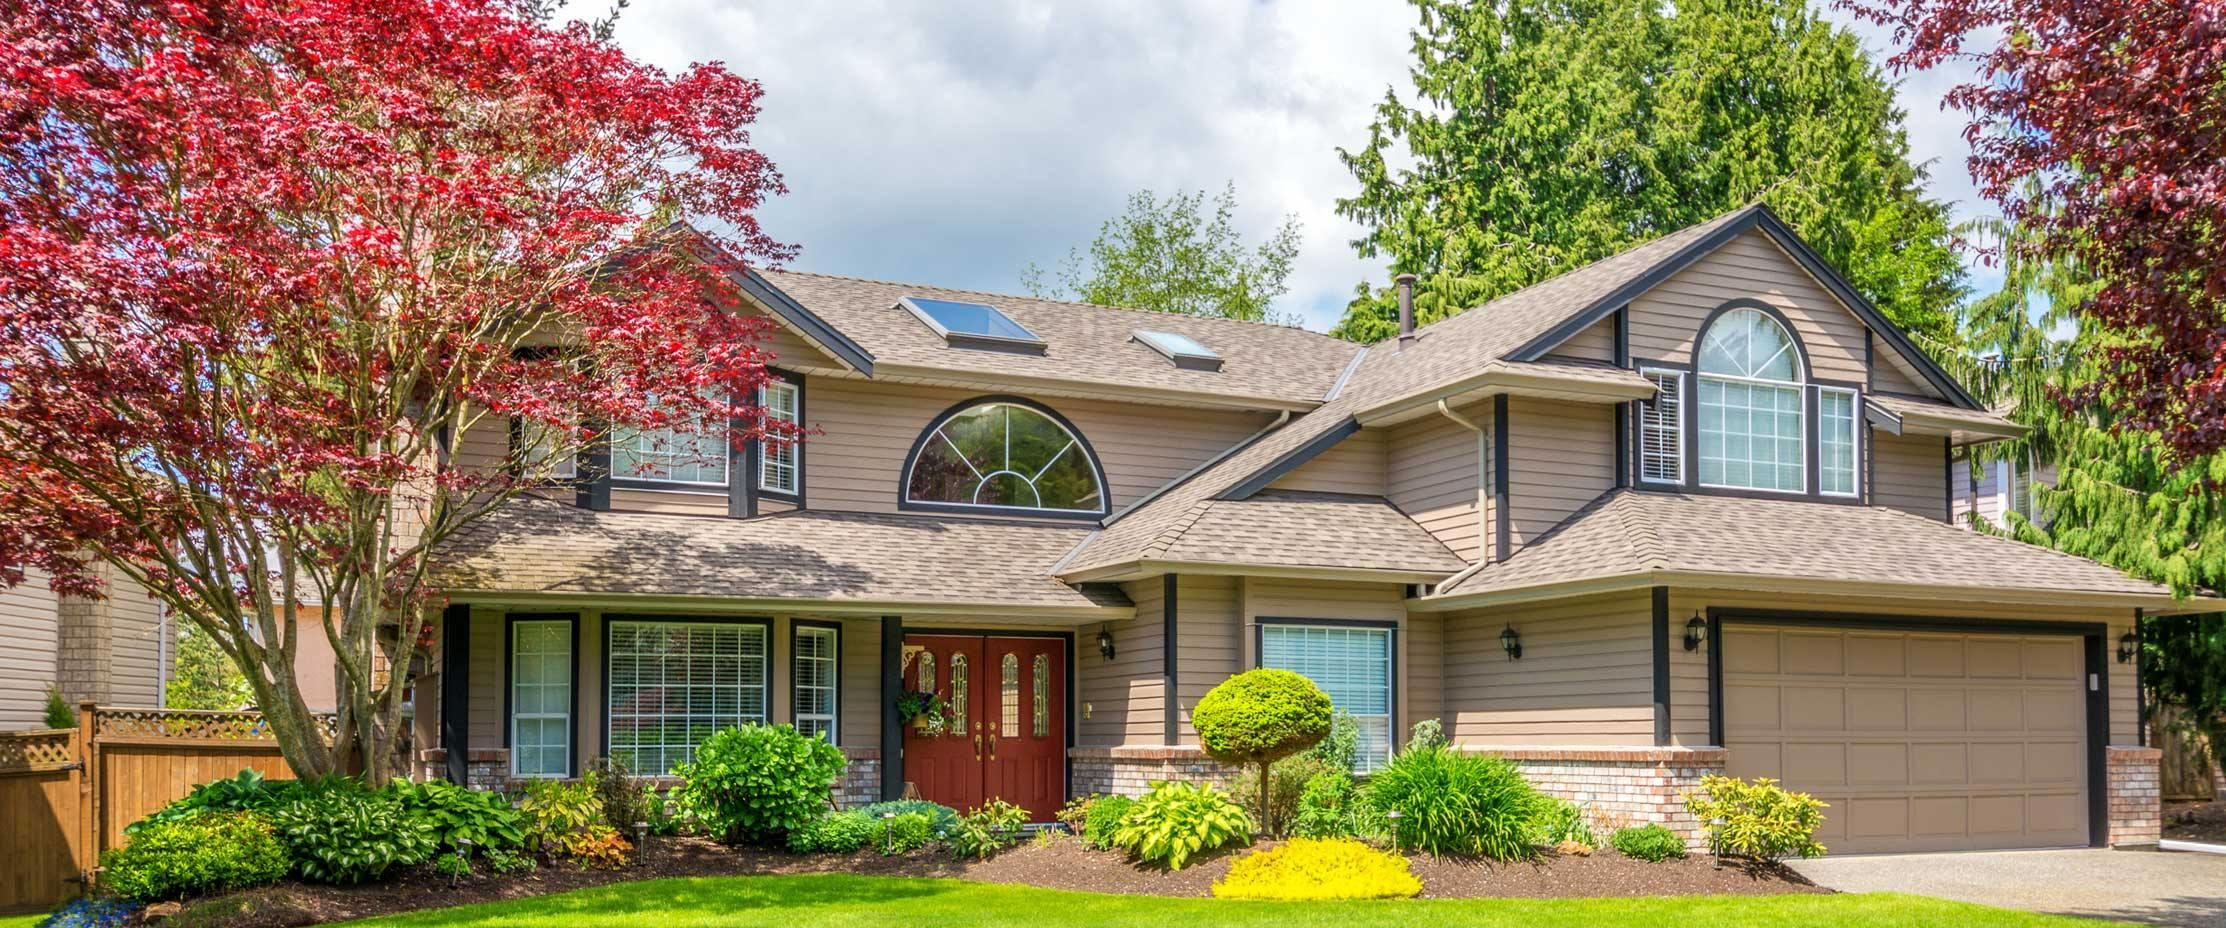 Over the Top Home Improvement image 1